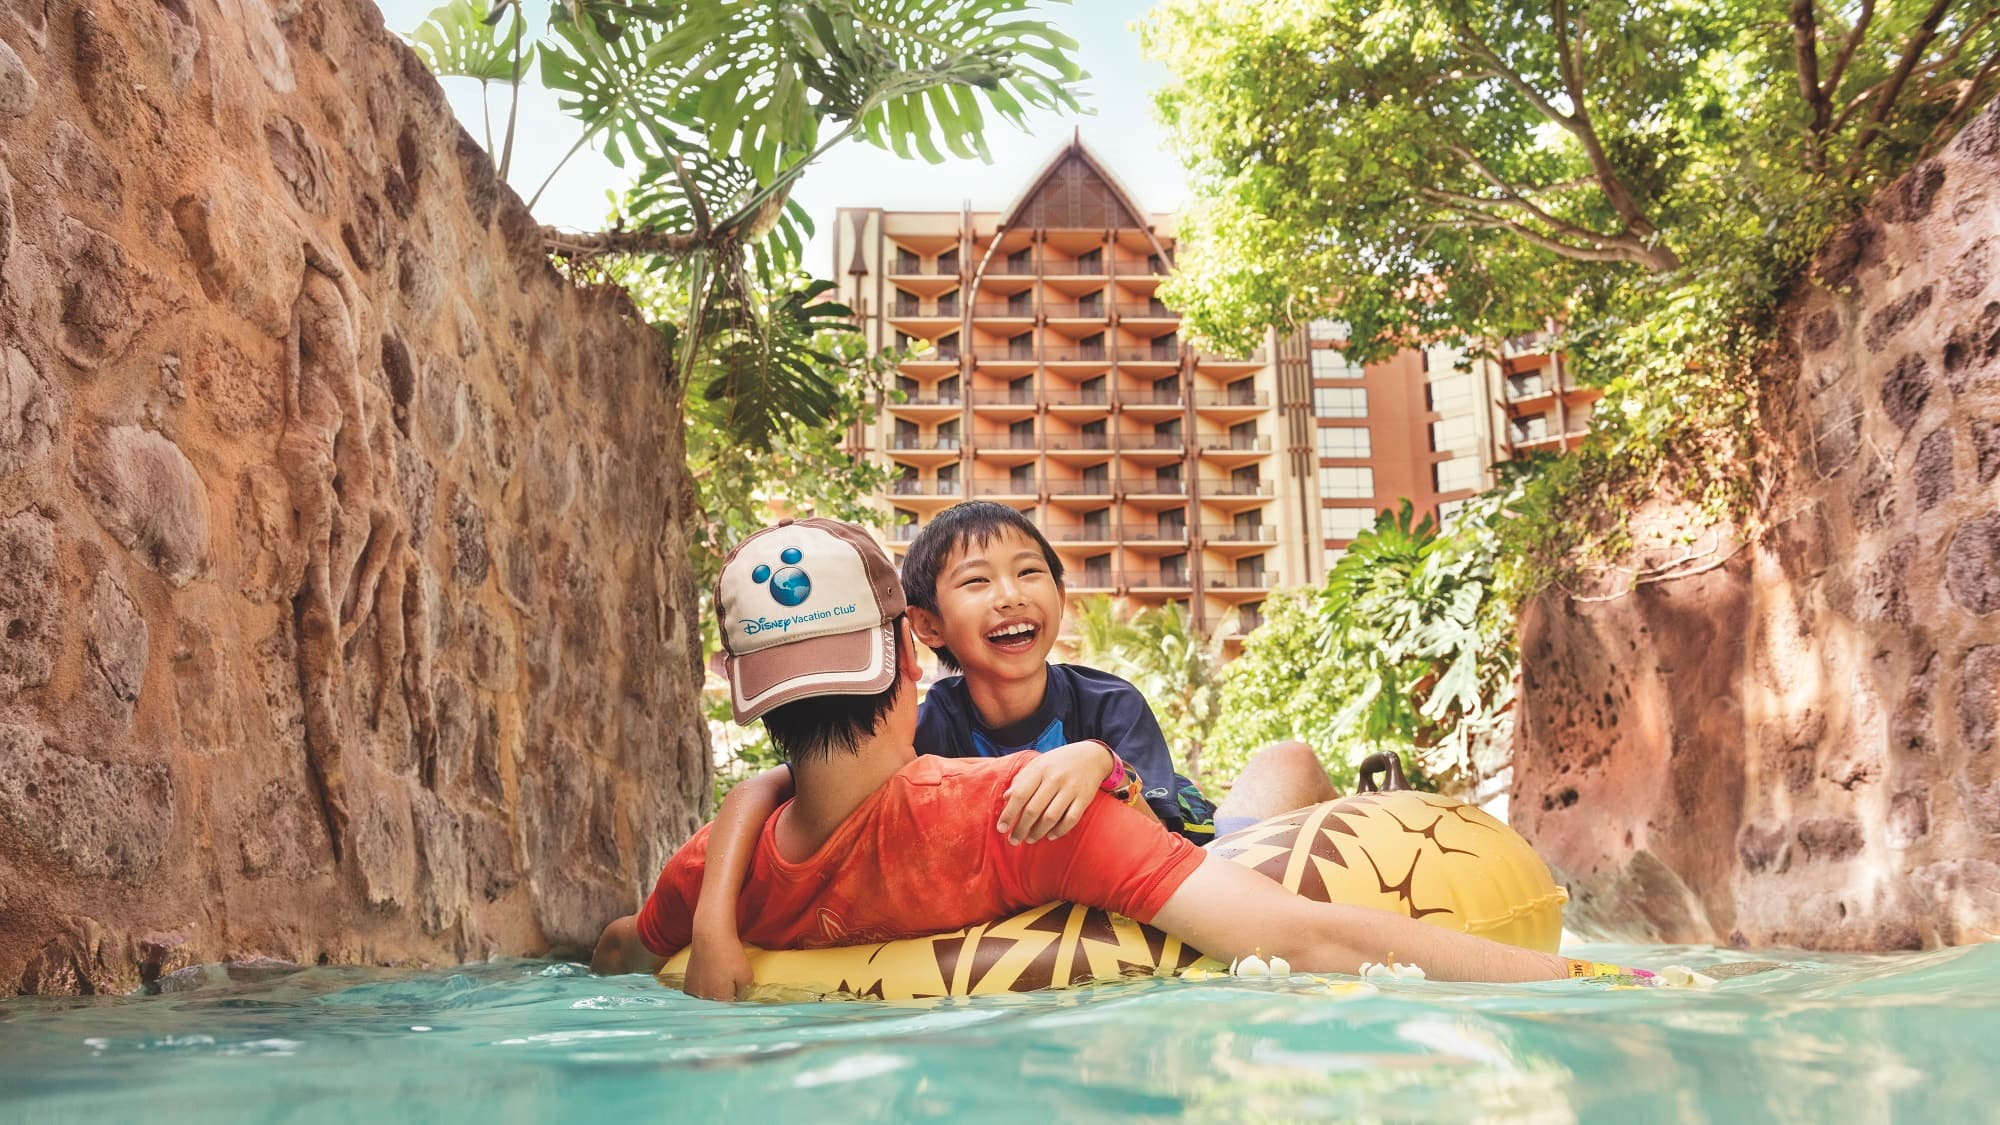 A father and son floating on a raft along the lazy river at Aulani Resort